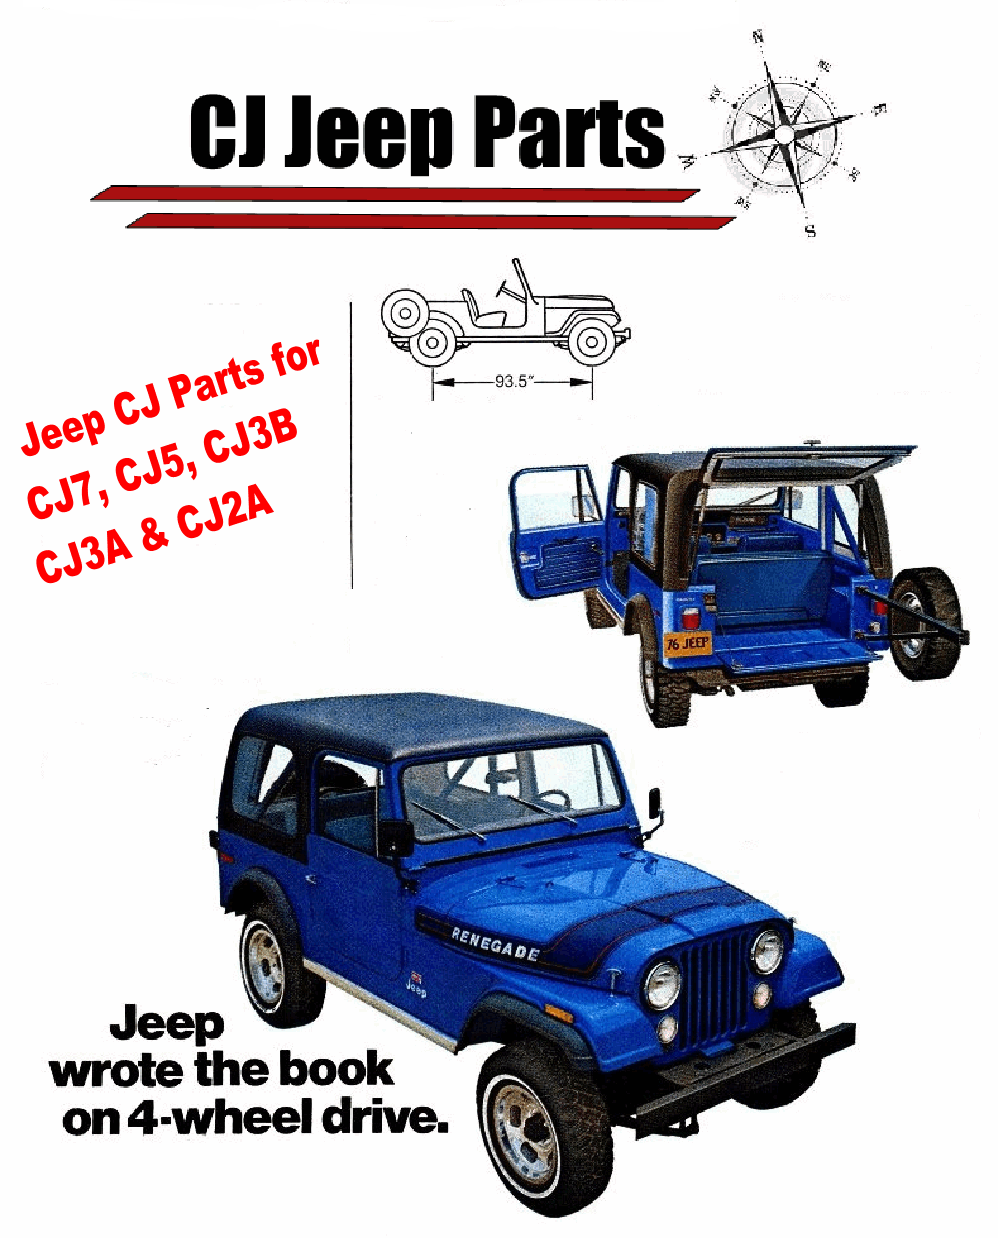 Jeep CJ Parts at CJJeepParts.com